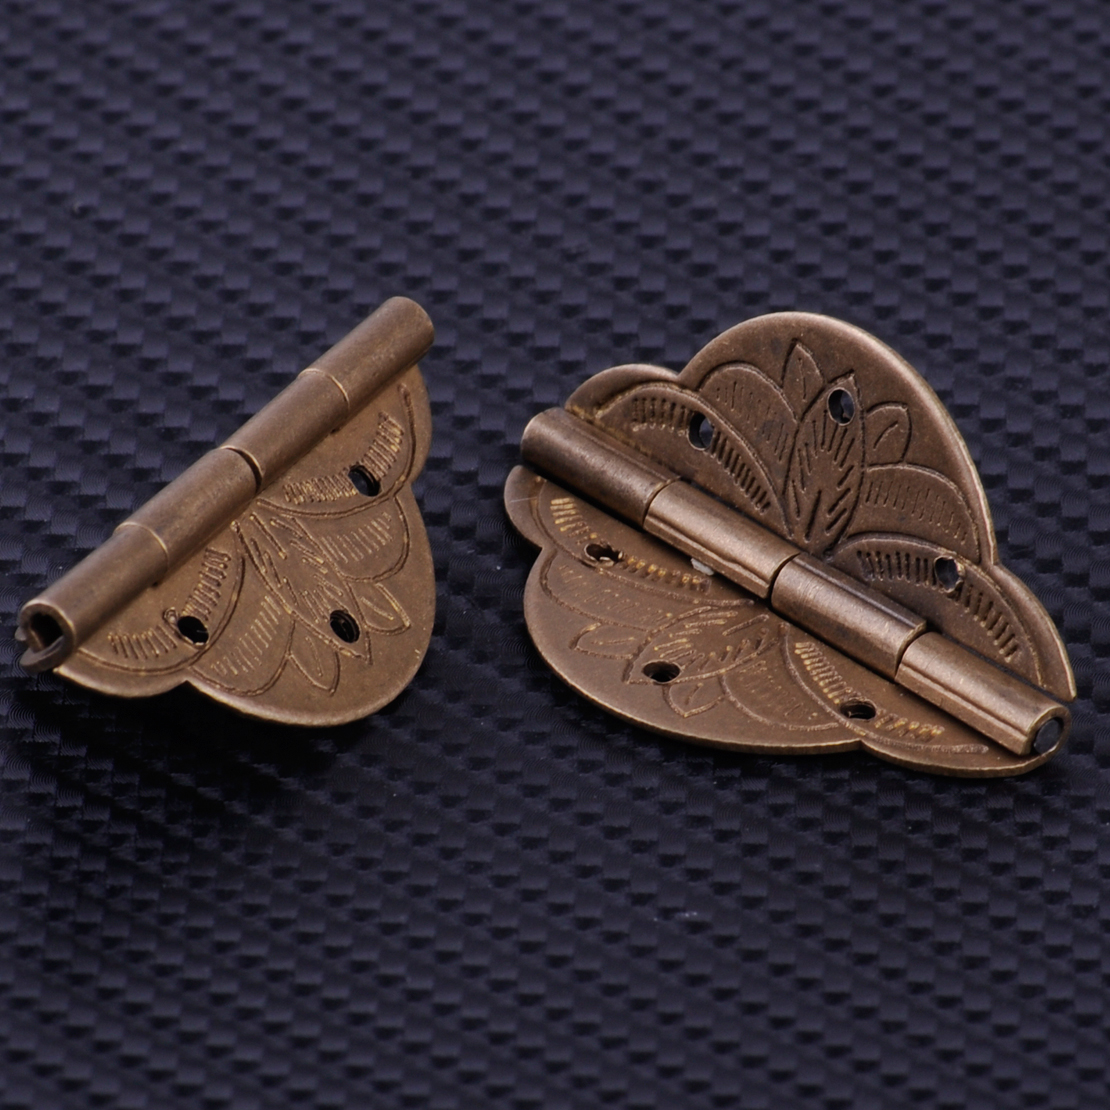 2Pcs Vintage Bronze Brass Hinge For Jewelry Box Decorative Cabinet Cupboard Case Furniture Door Angles Rotation 270 Degree Max